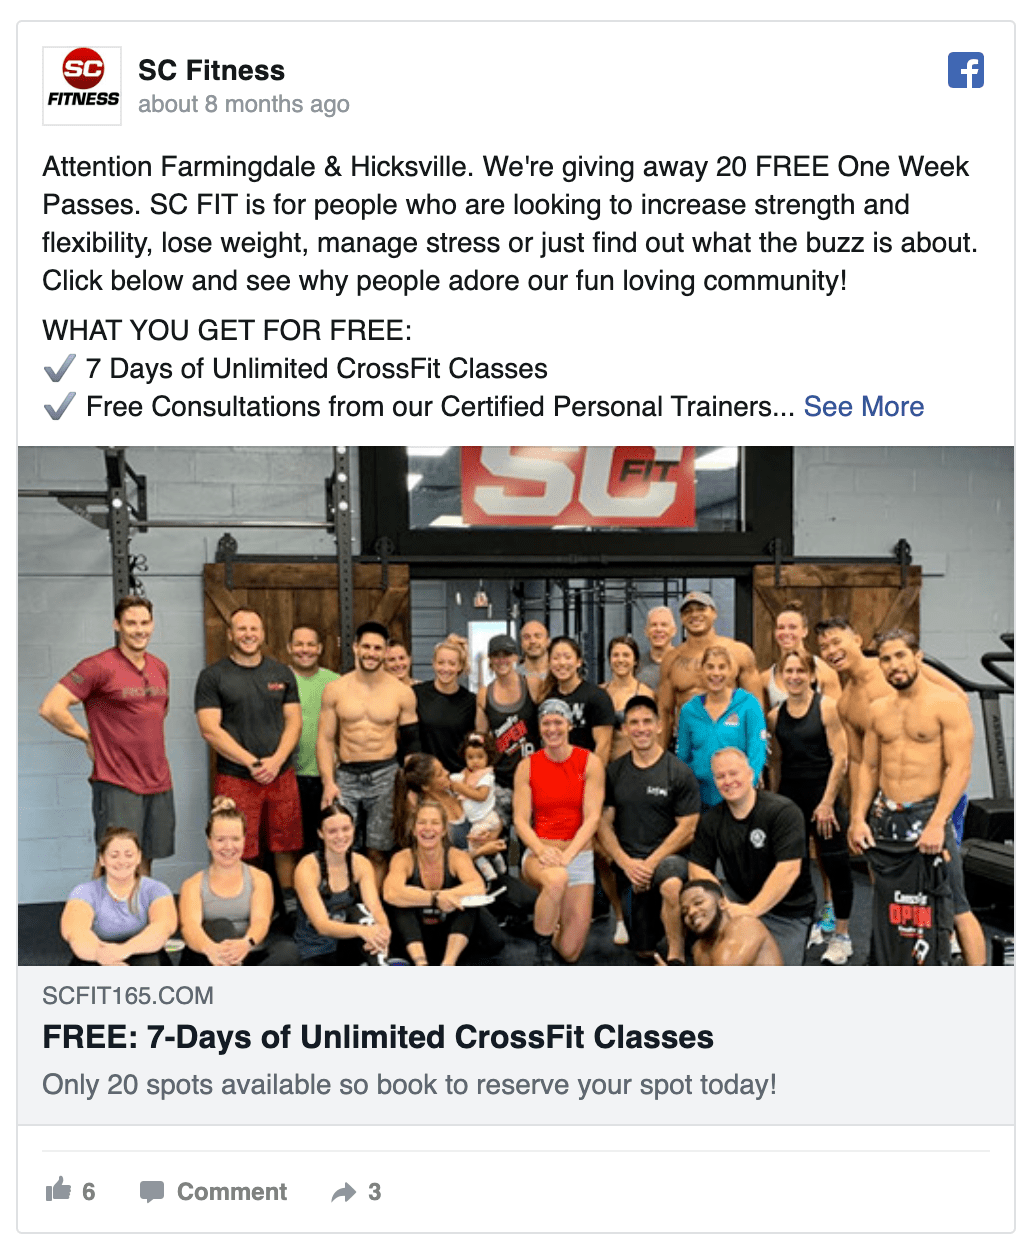 scfitness-crossfit-facebook-ad